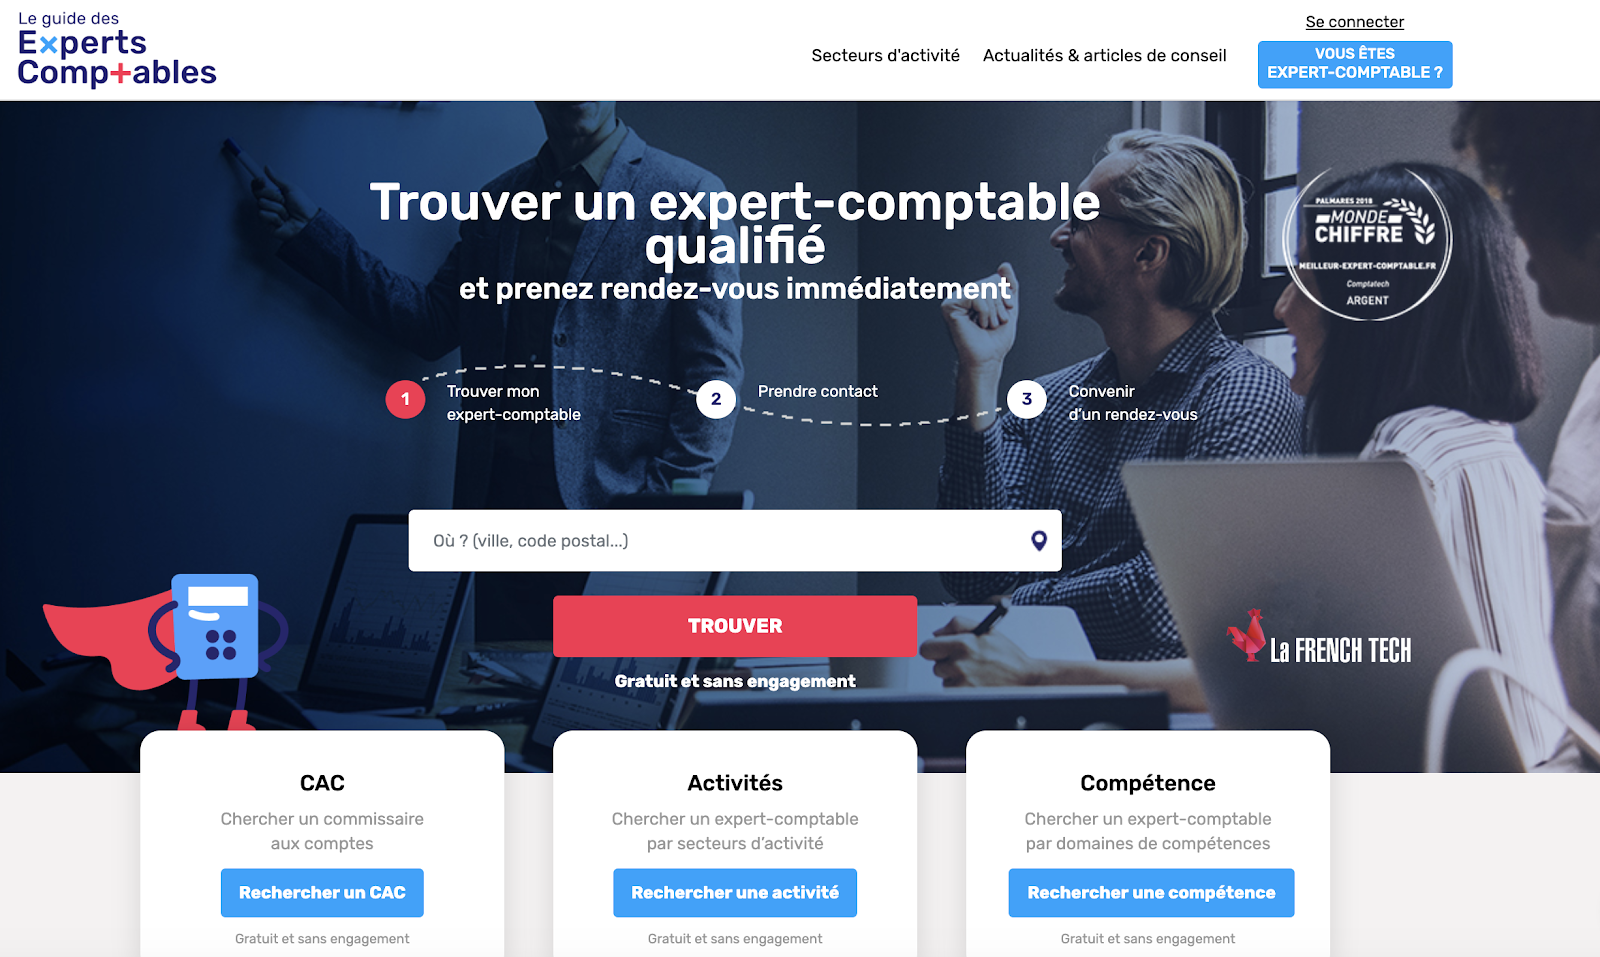 Le Guide des Experts comptables